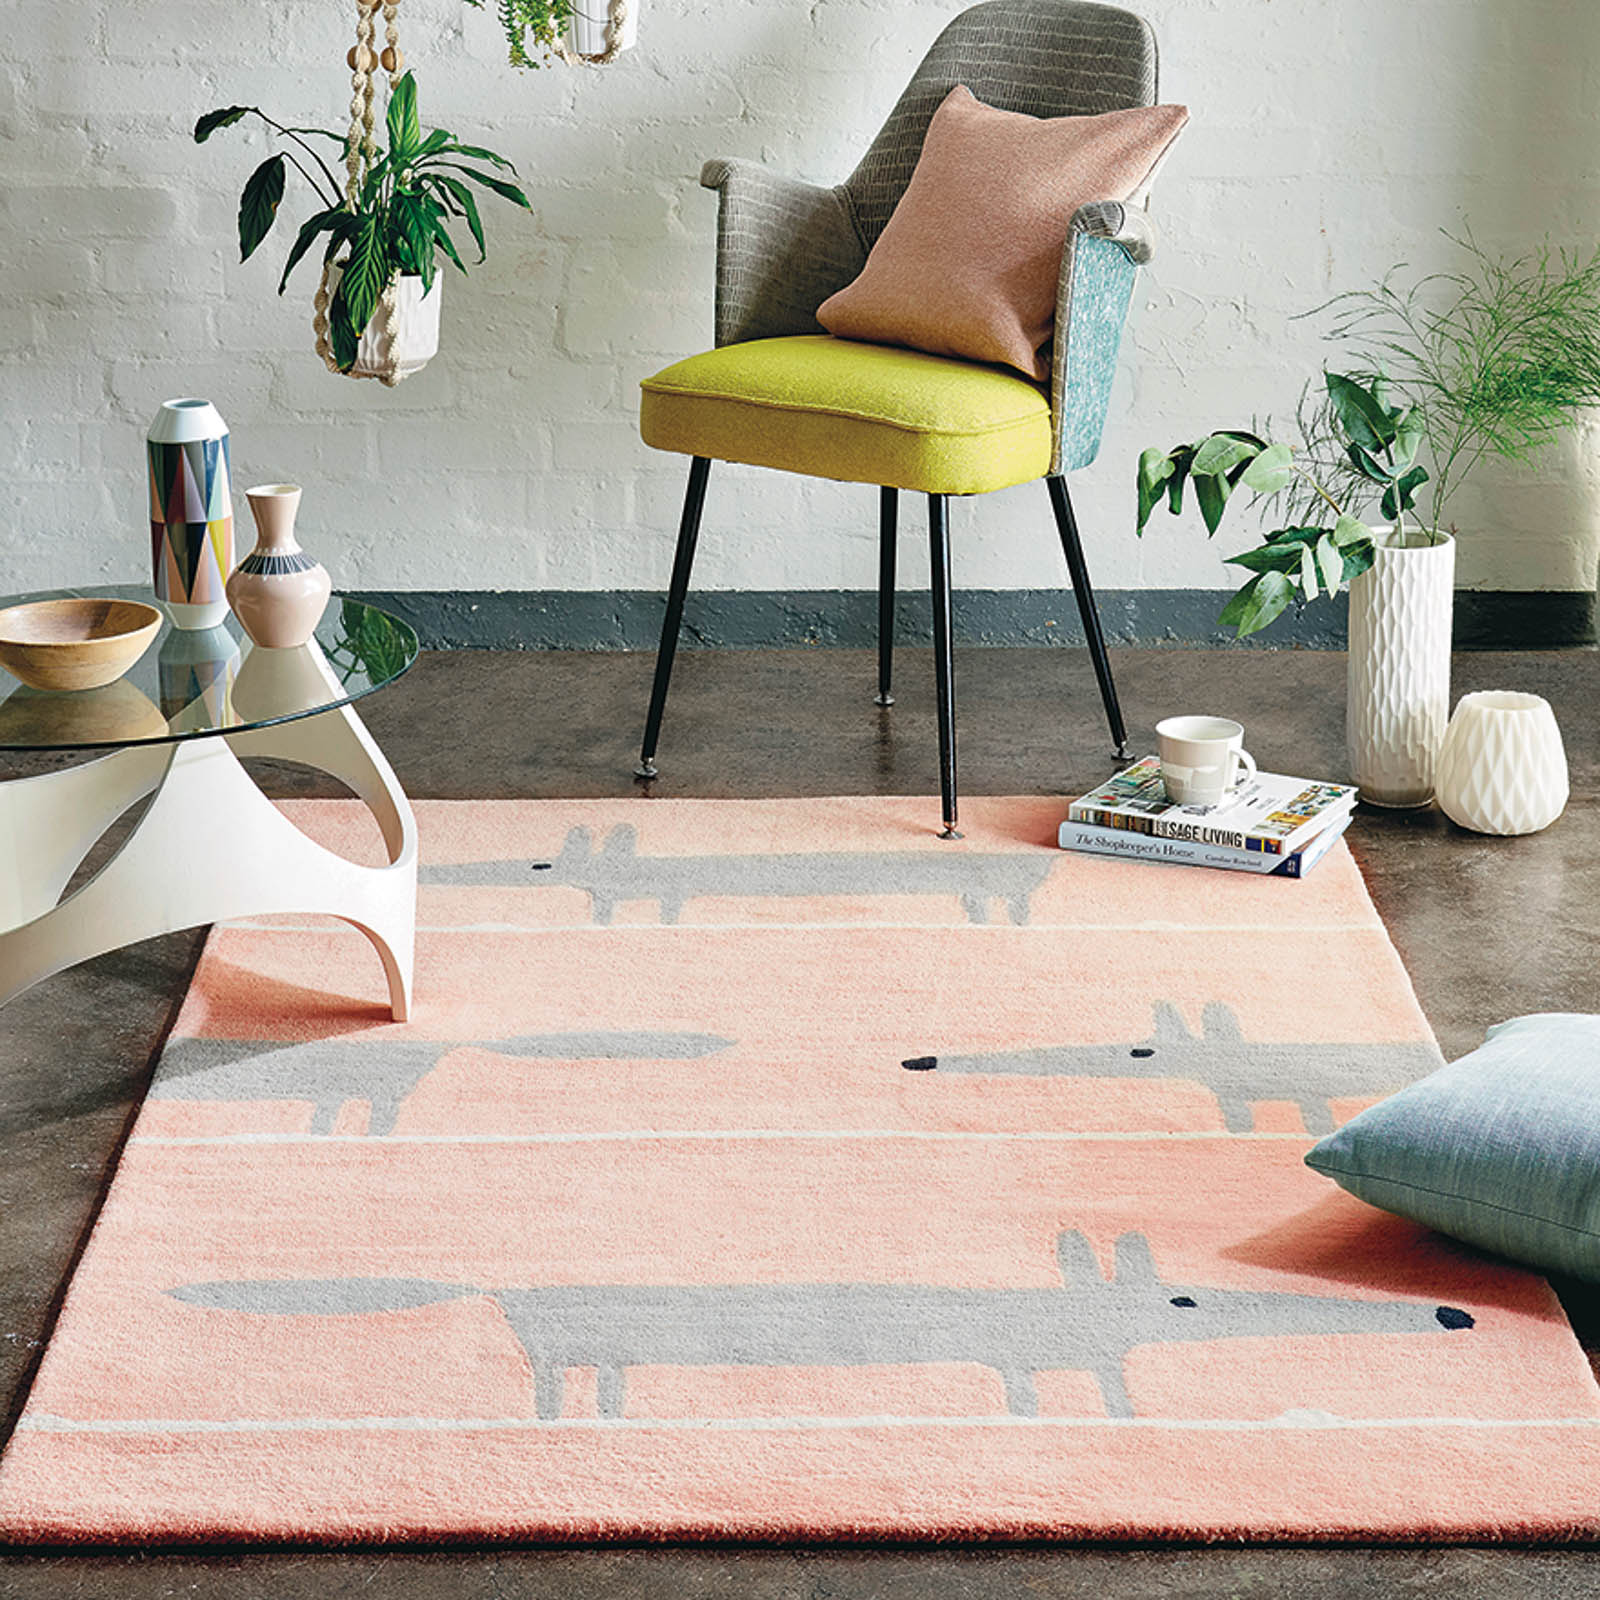 mr fox rug in pink from the rug selller